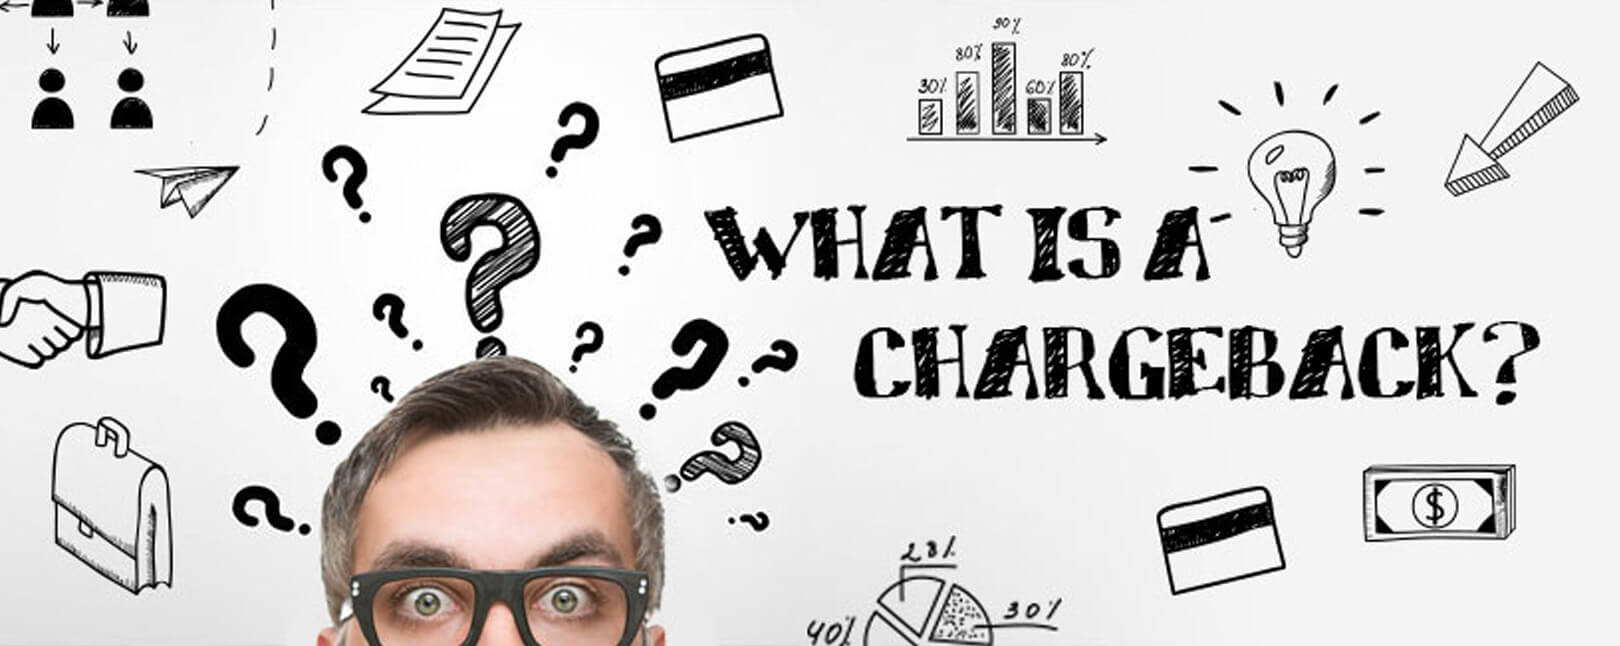 Chargebacks Explained What Is A Chargeback And Why It Matters